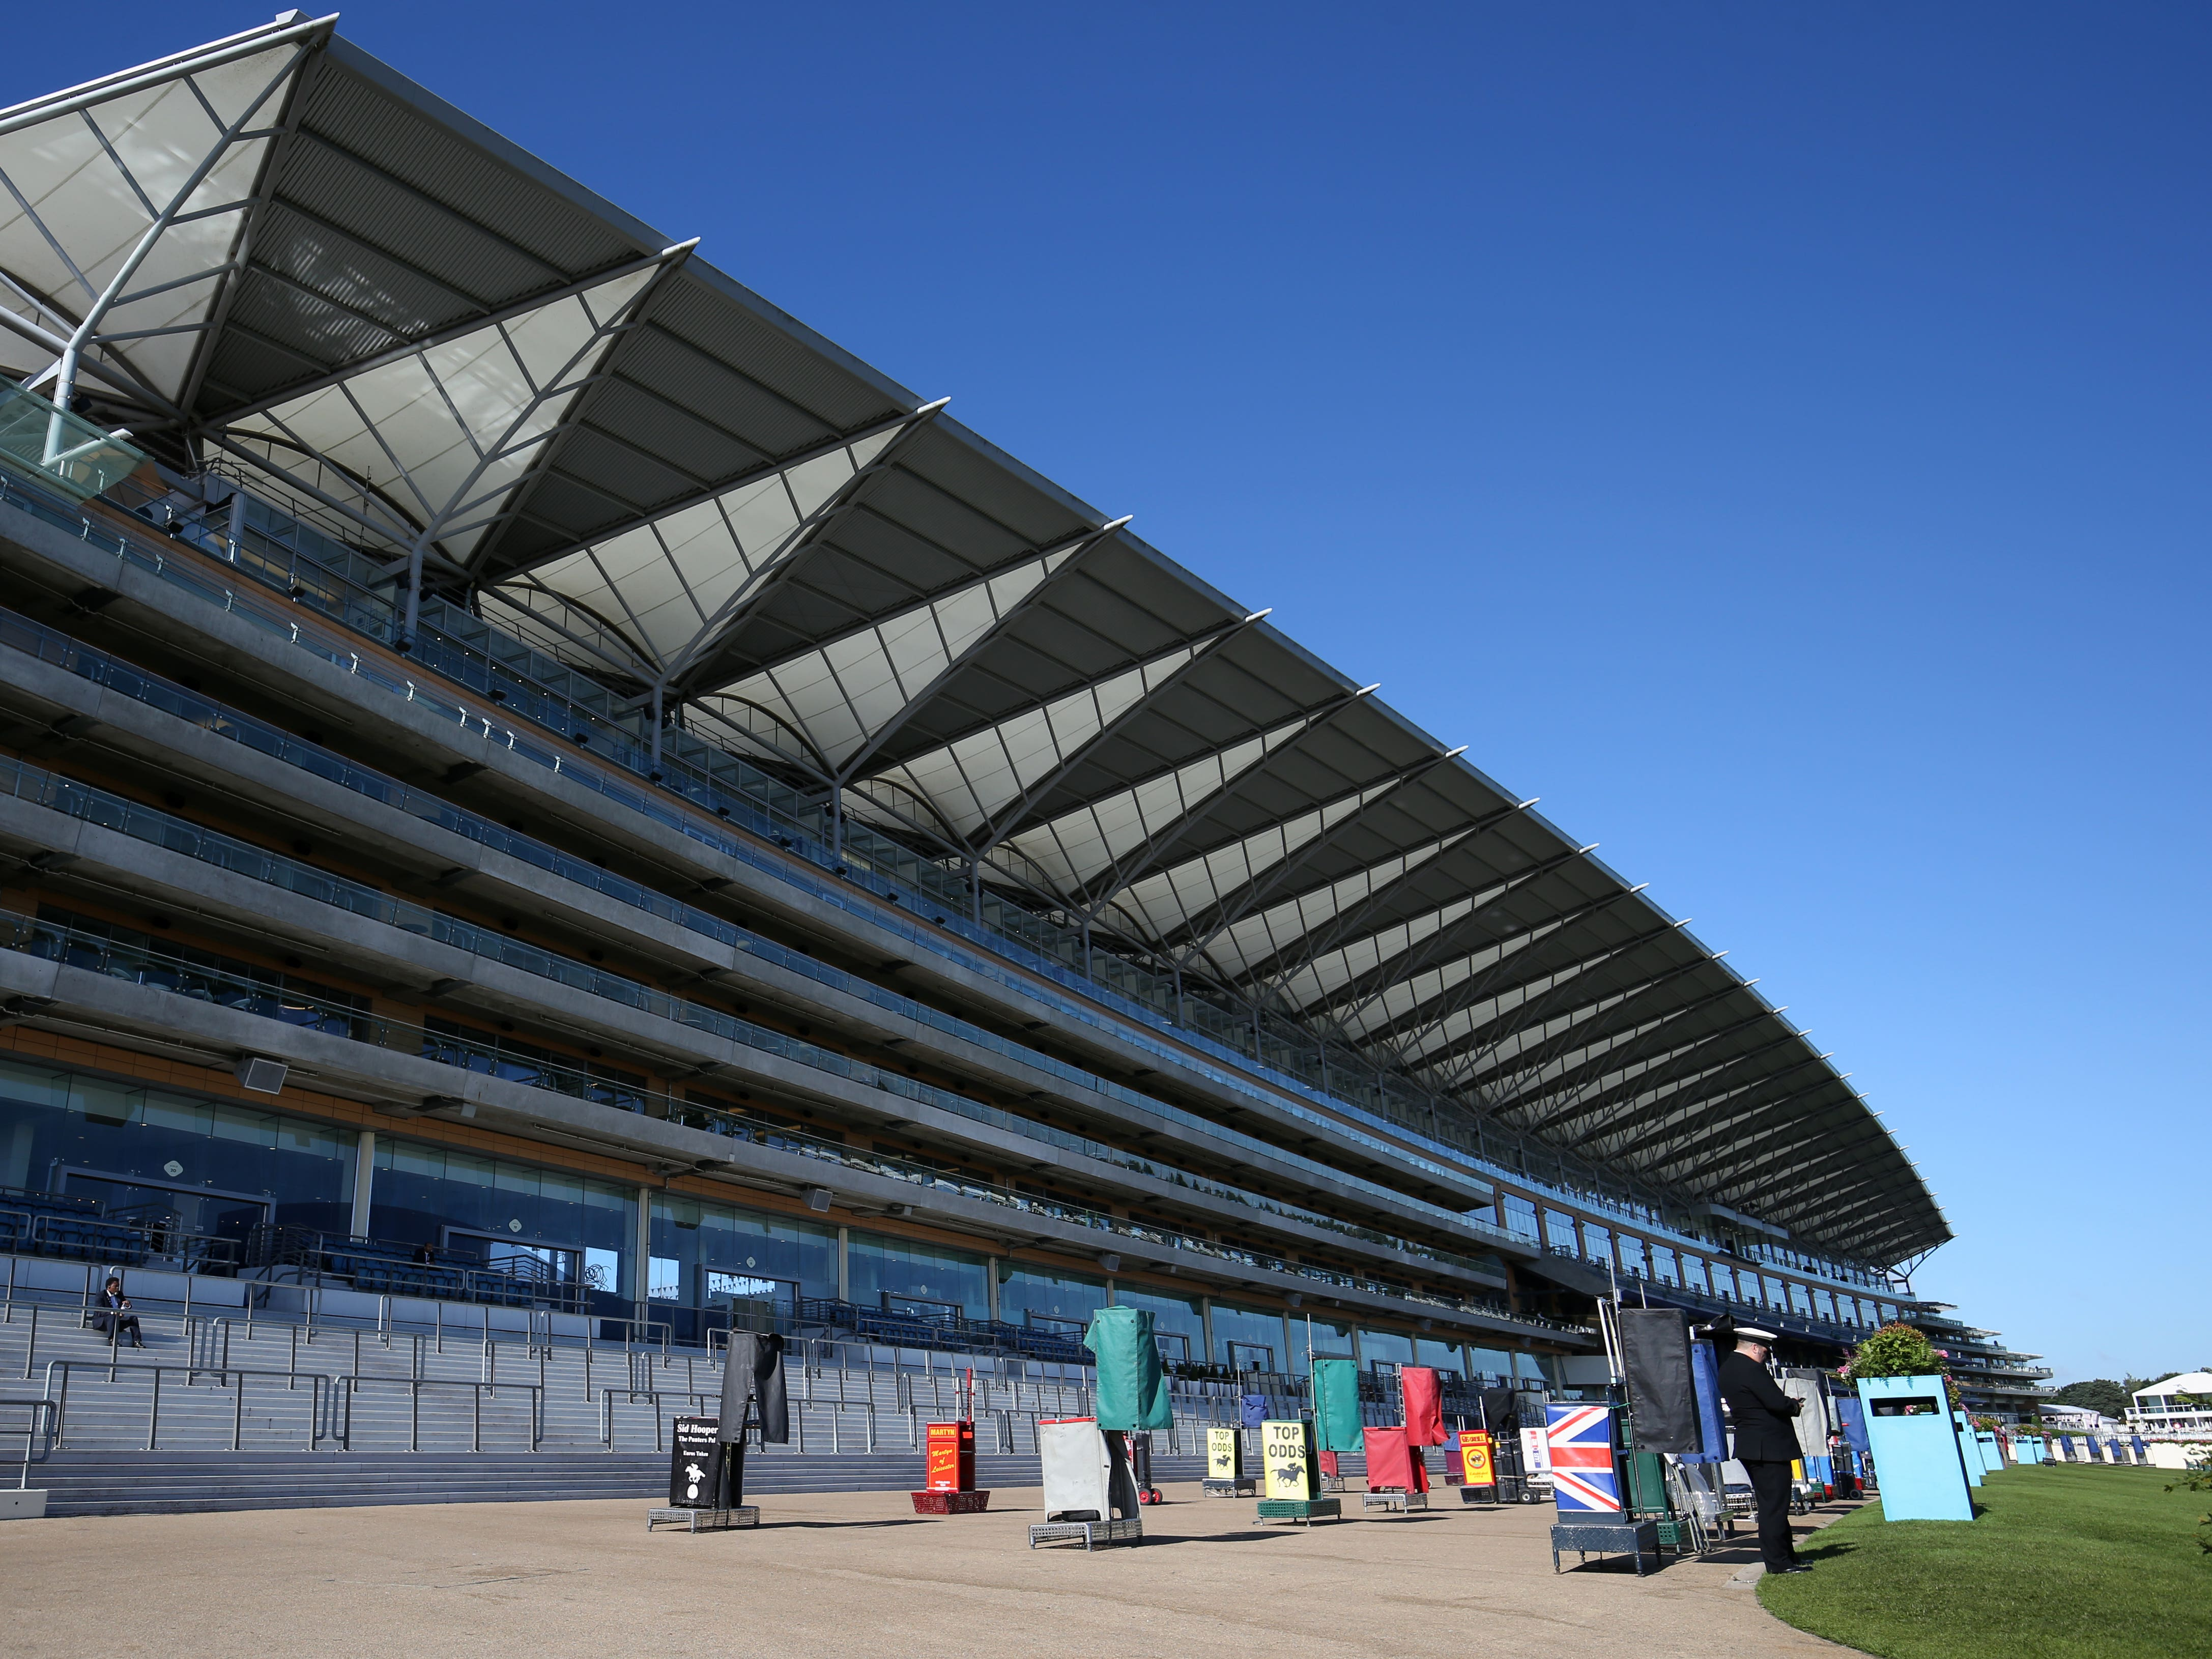 Ascot will hold a morning inspection because of forecast high winds on Saturday (Jonathan Brady/PA)